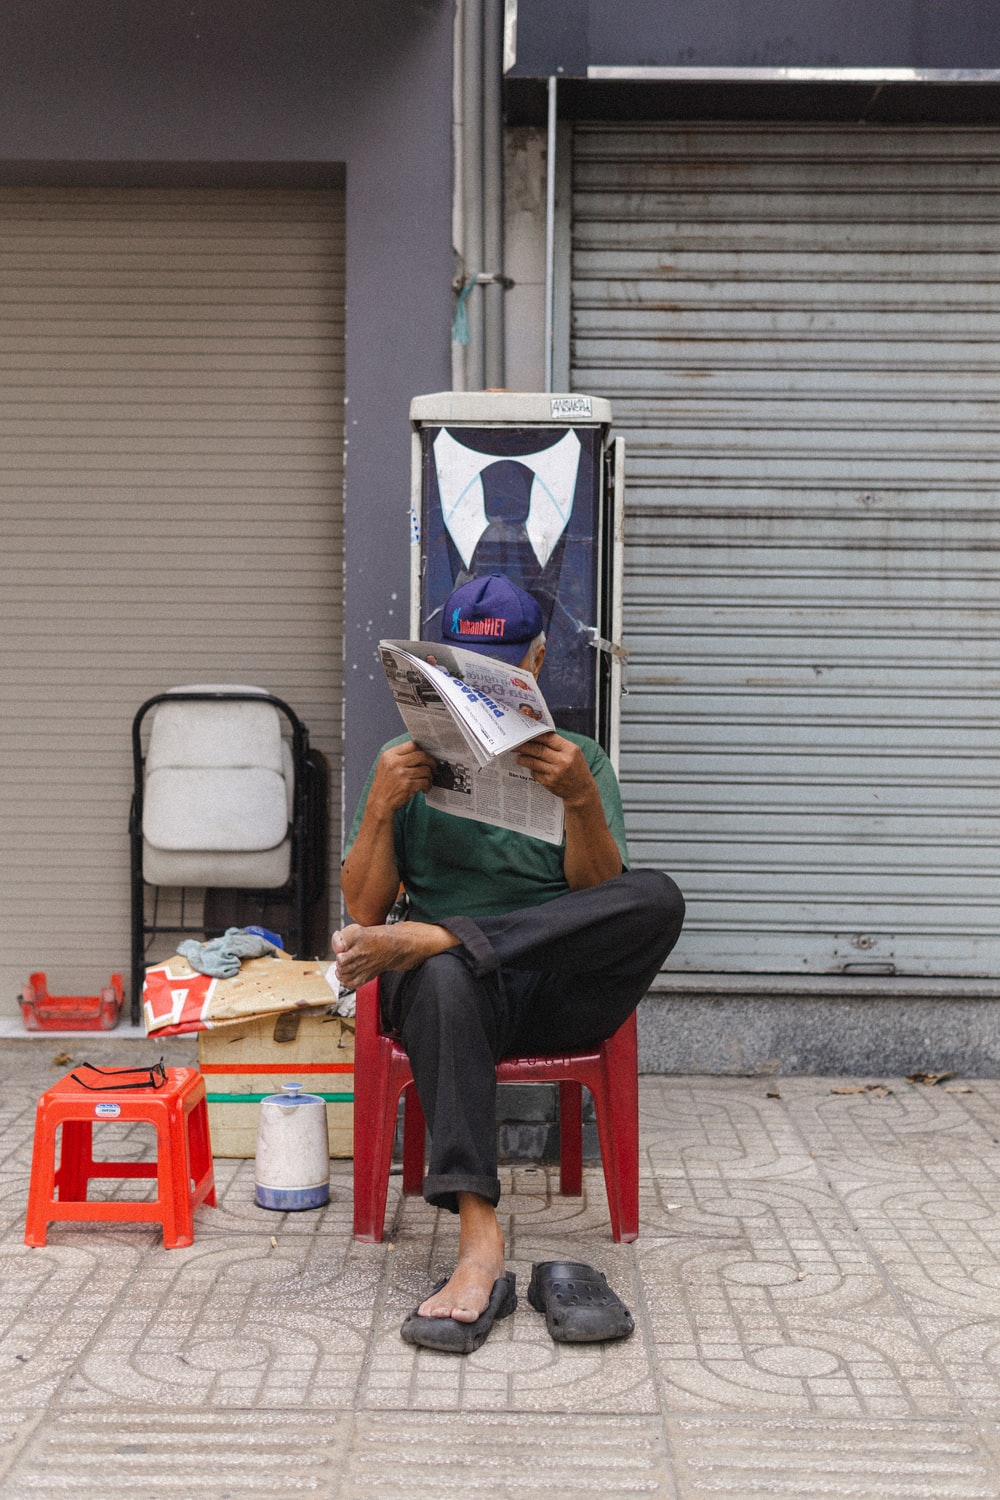 man in green t-shirt reading book sitting on red plastic chair